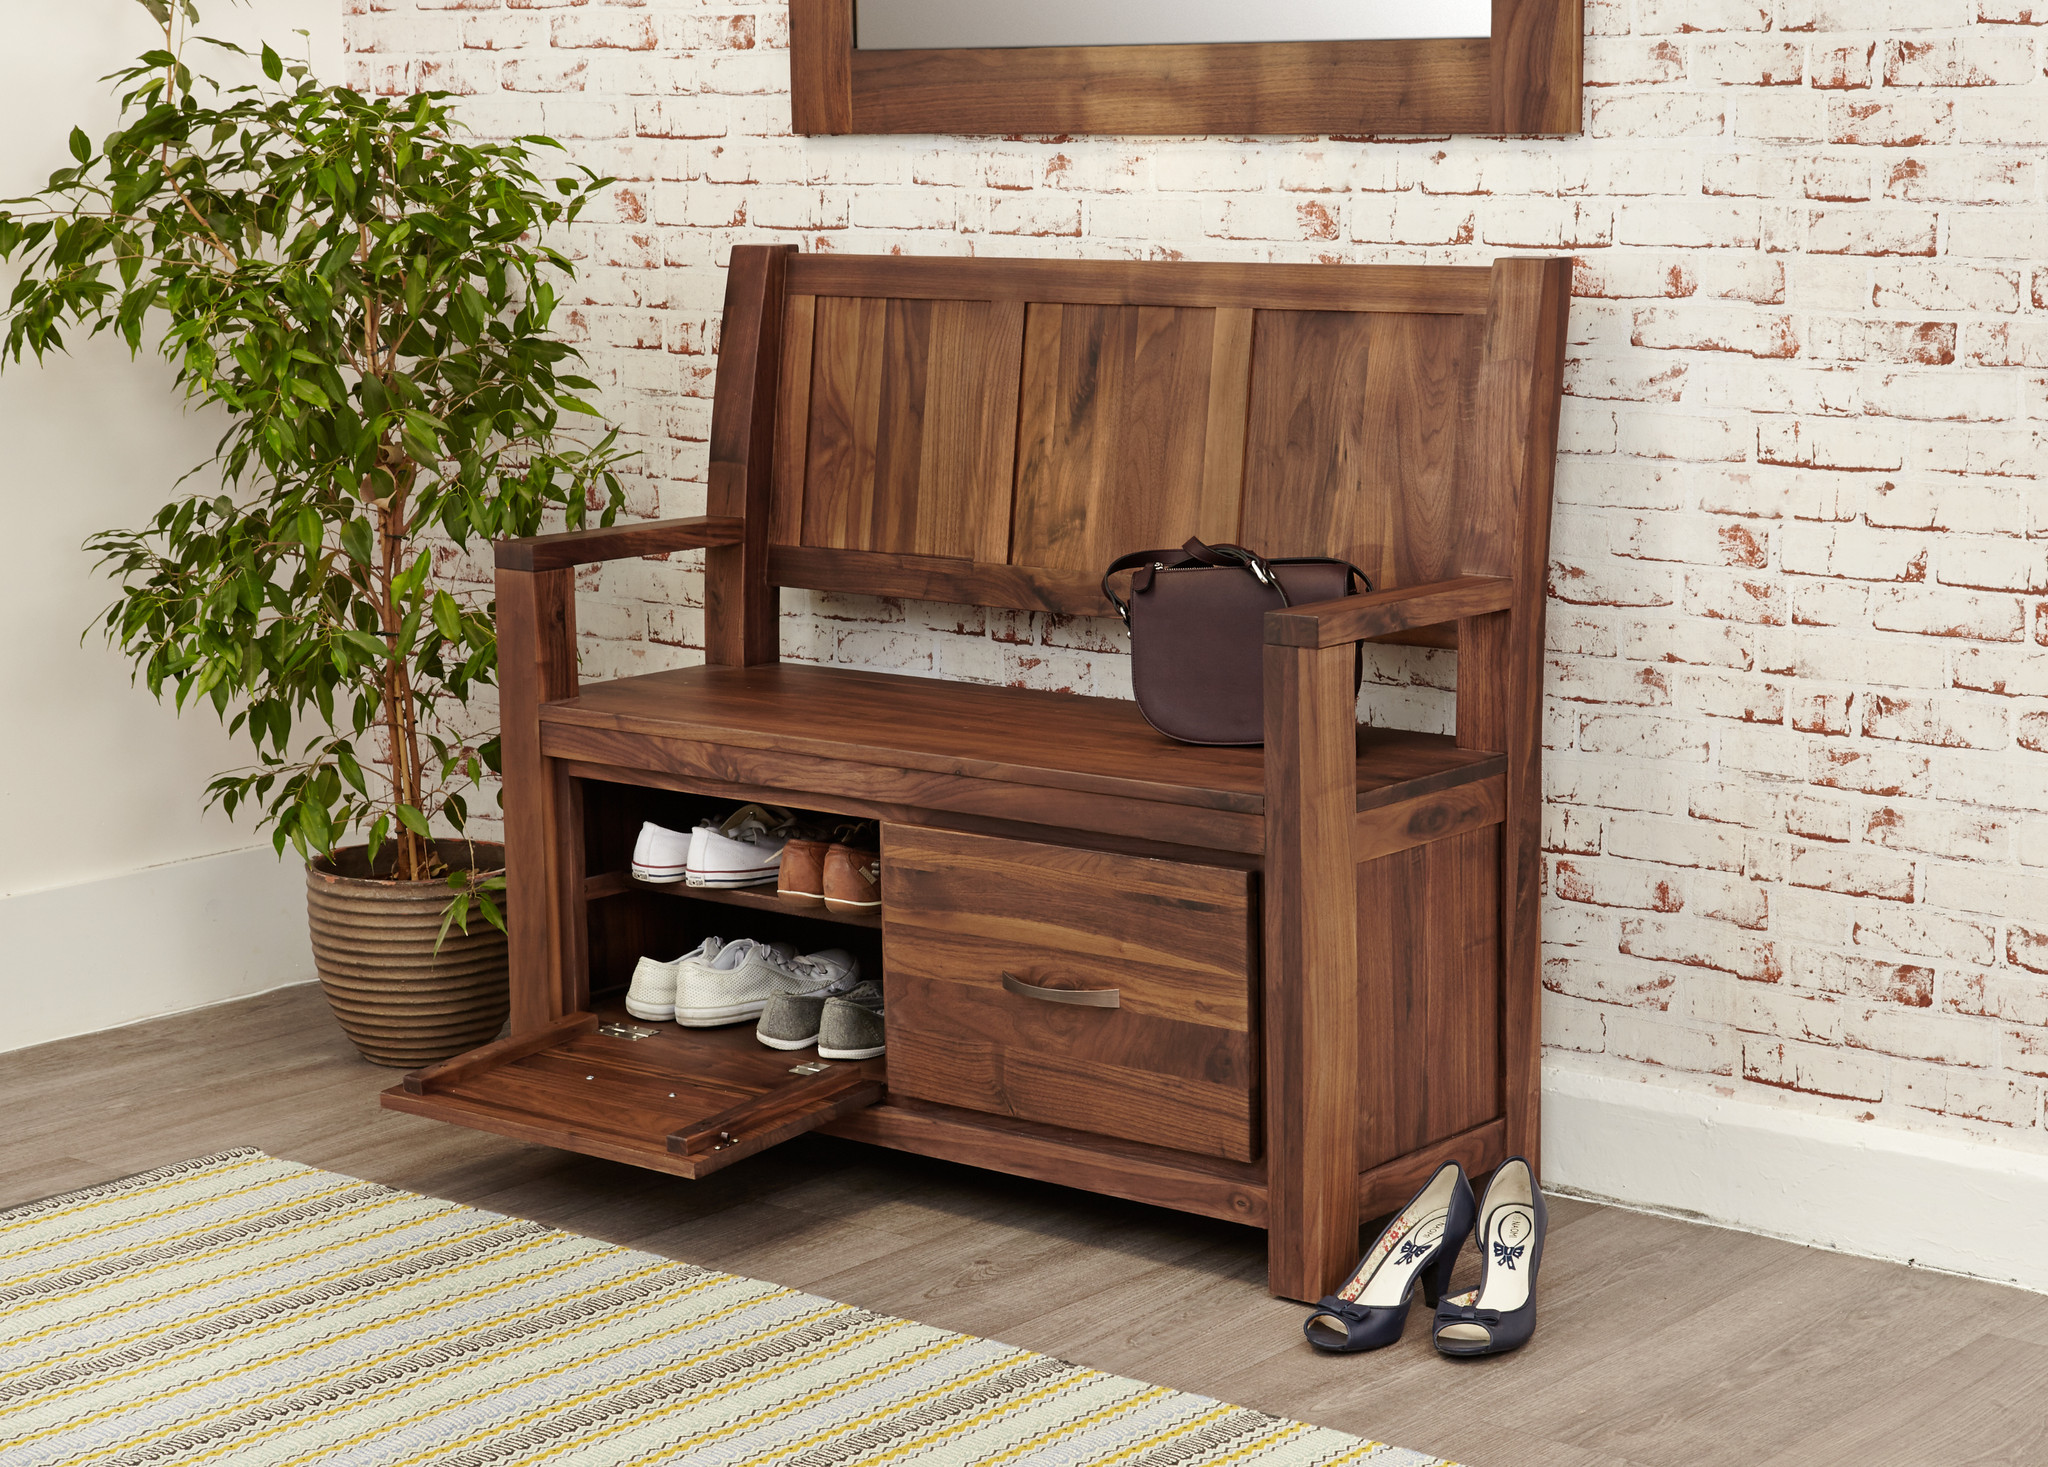 Mayan Walnut Monks Bench with Shoe Storage